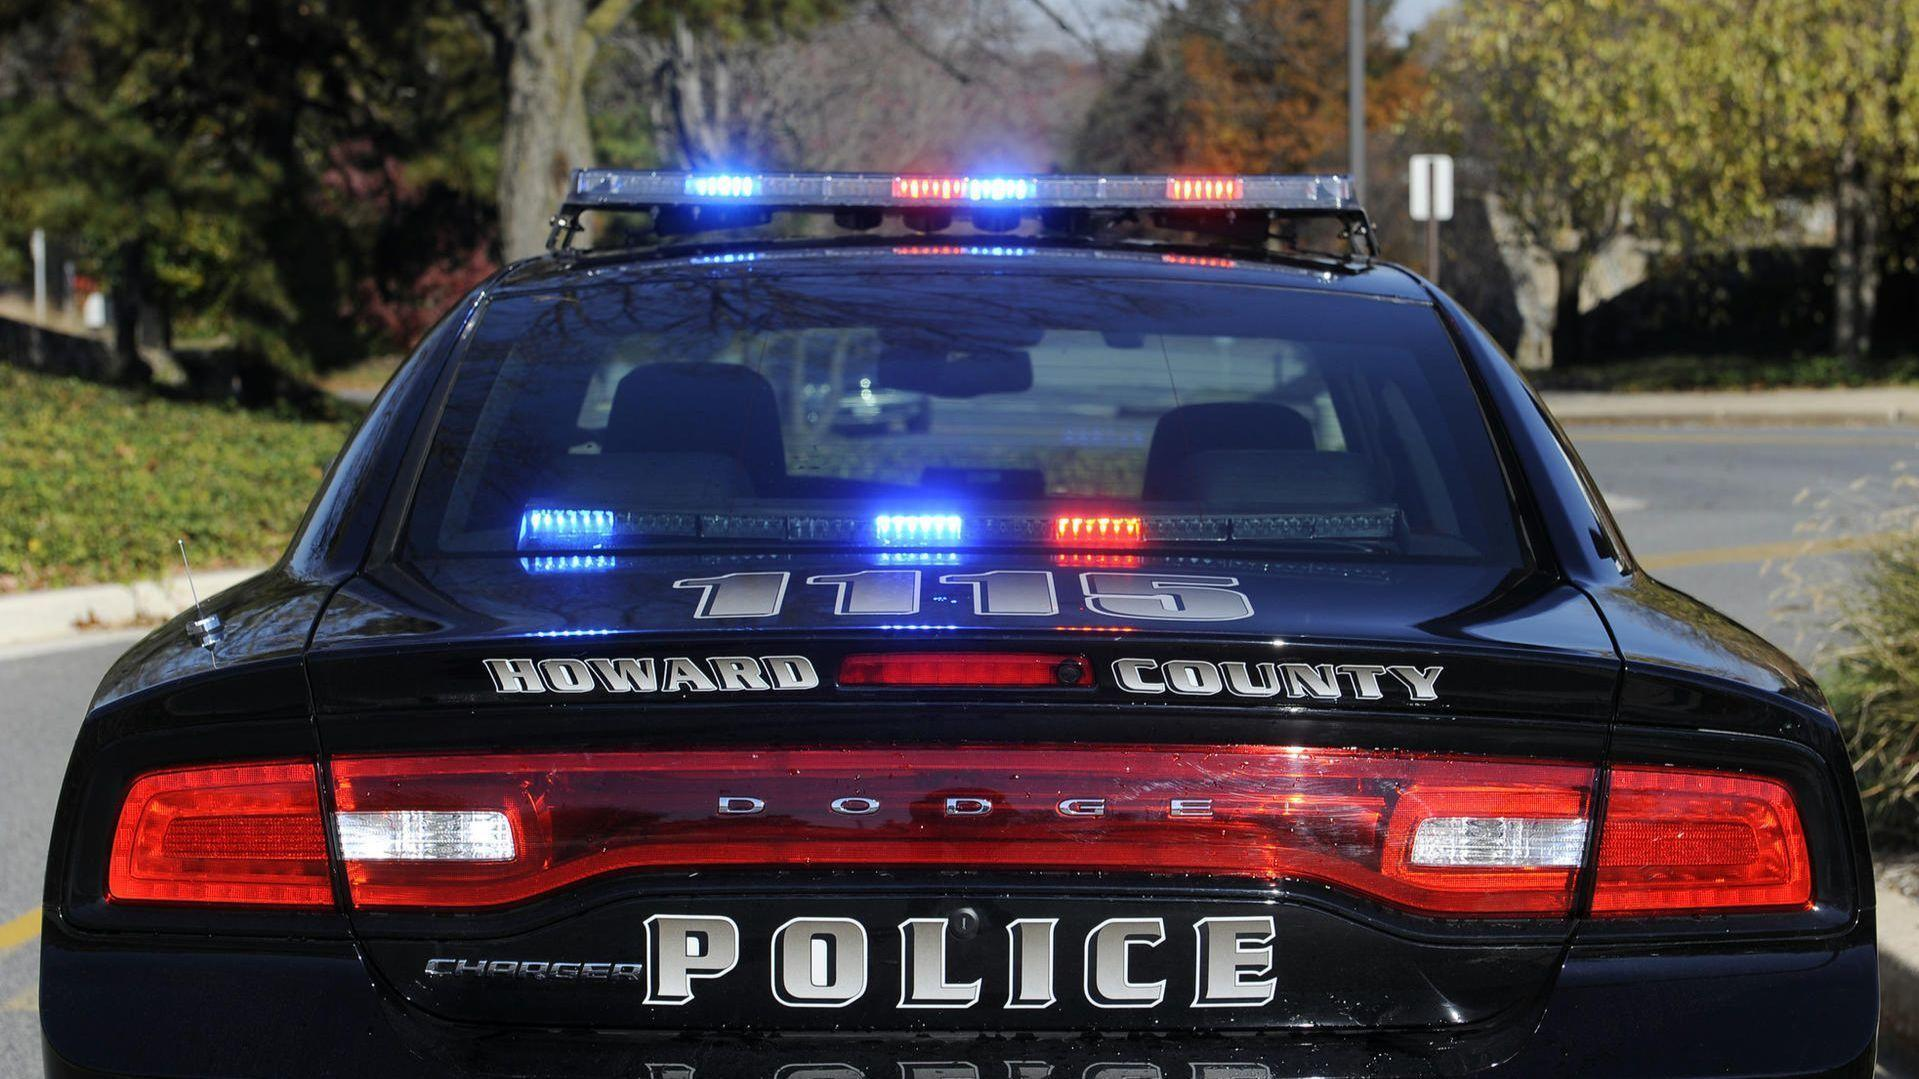 9-year-old boy on bike struck, seriously injured by vehicle in Elkridge